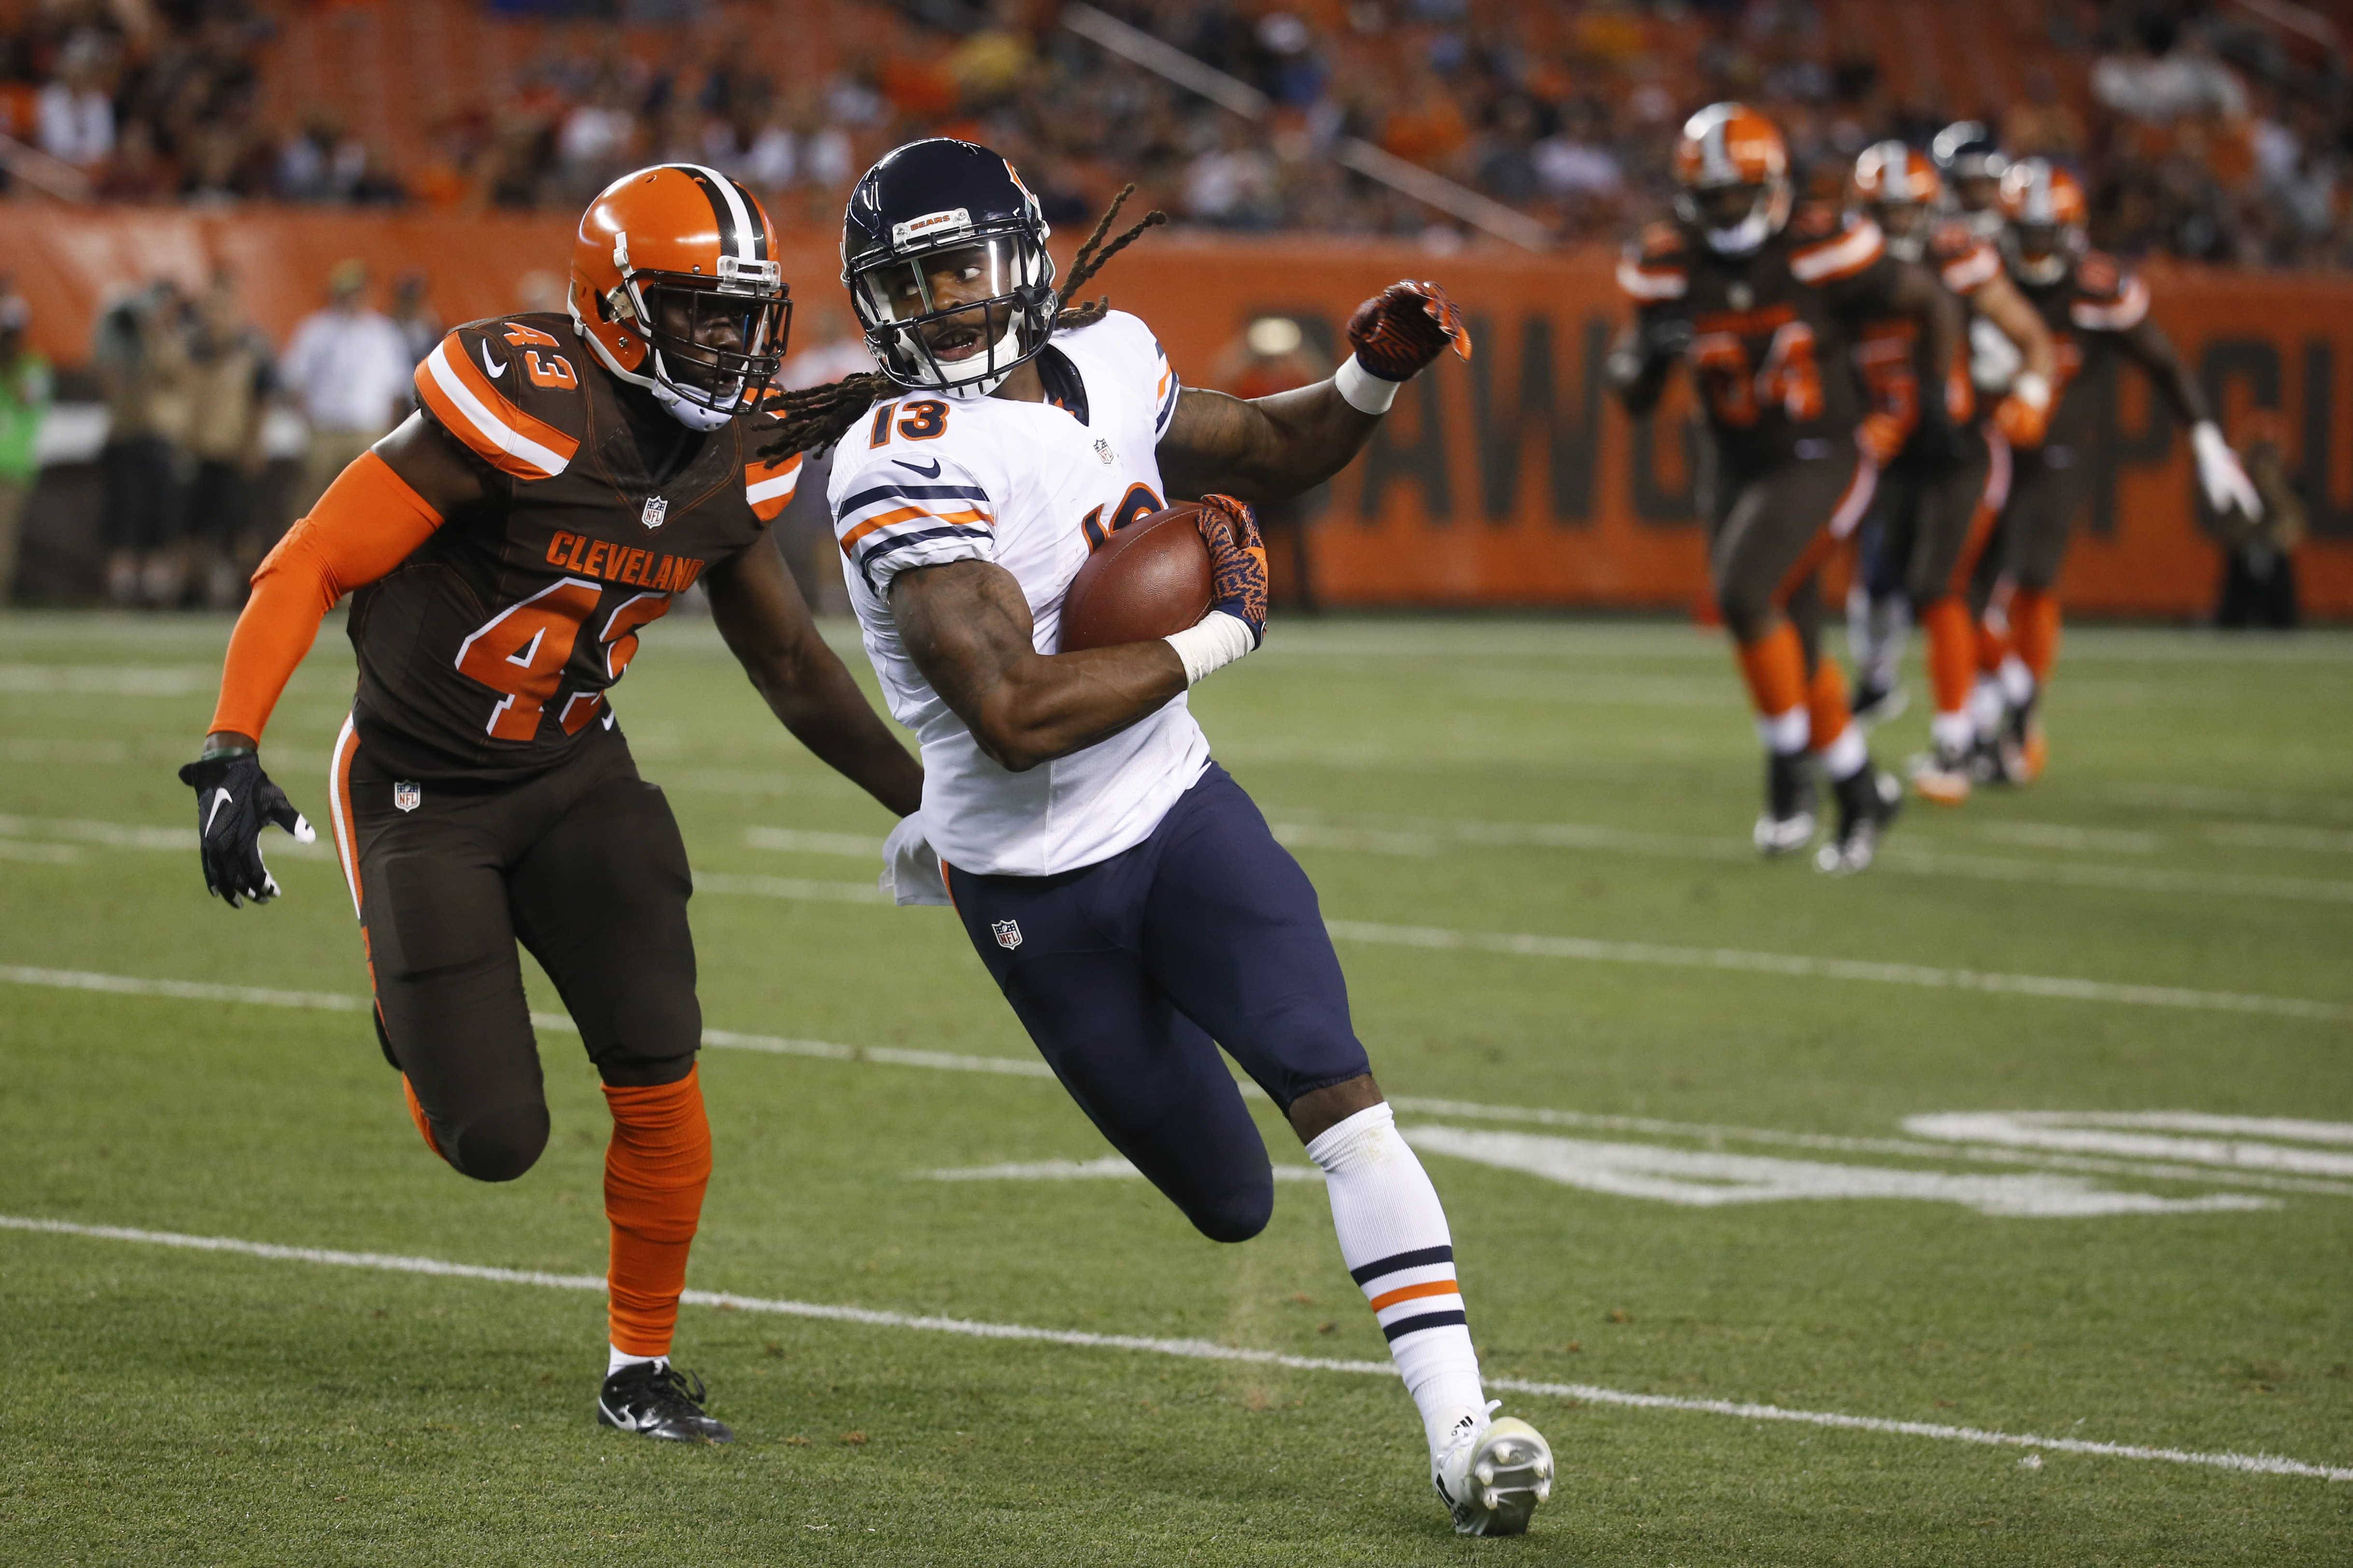 Chicago Bears wide receiver Kevin White (13) runs the ball with Cleveland Browns cornerback Charles Gaines (43) in pursuit in the first half of an NFL preseason football game, Thursday, Sept. 1, 2016, in Cleveland.